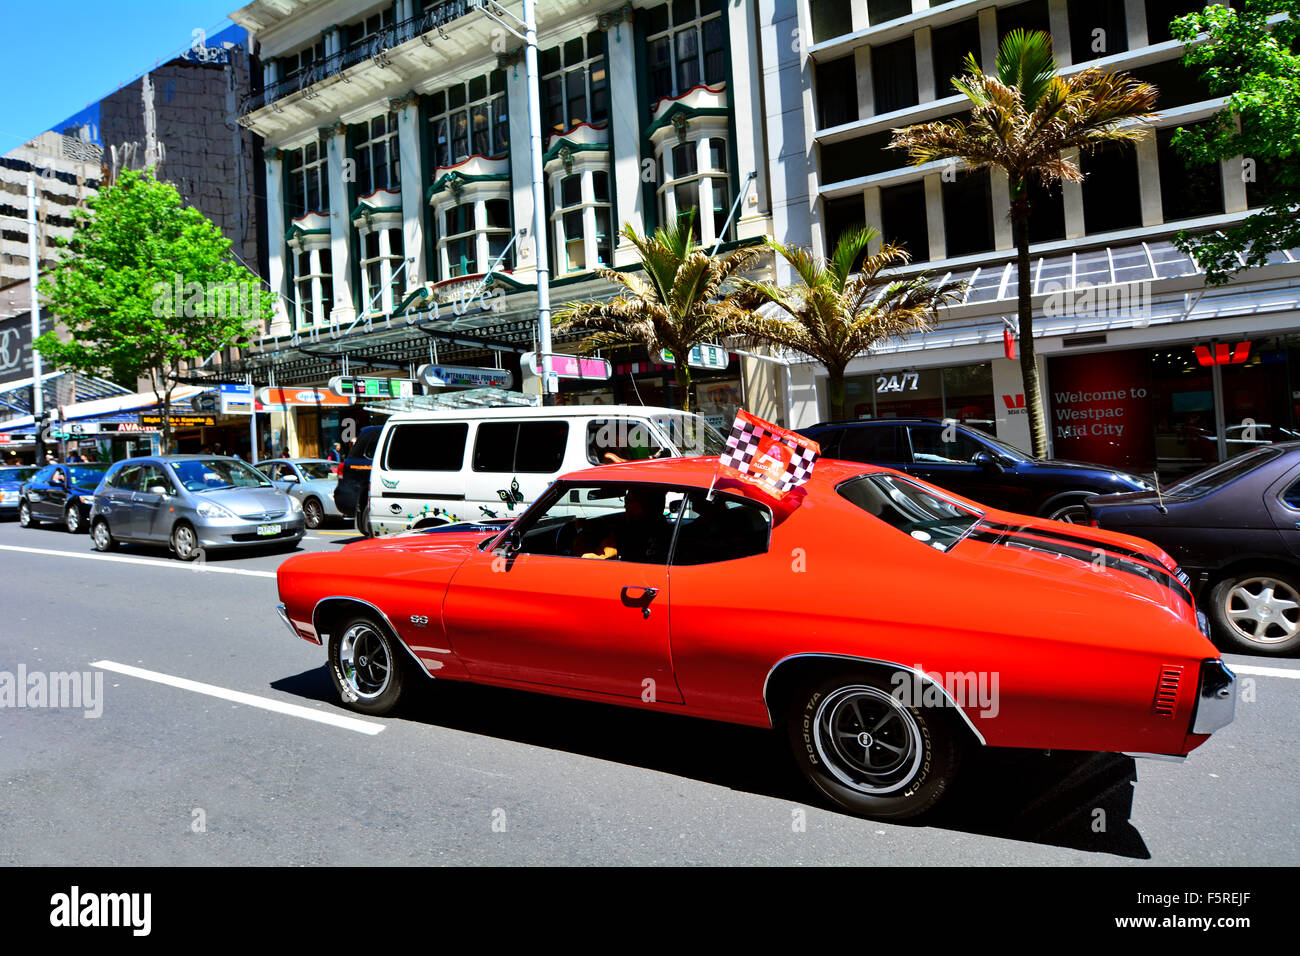 Muscle Car Stock Photos & Muscle Car Stock Images - Alamy